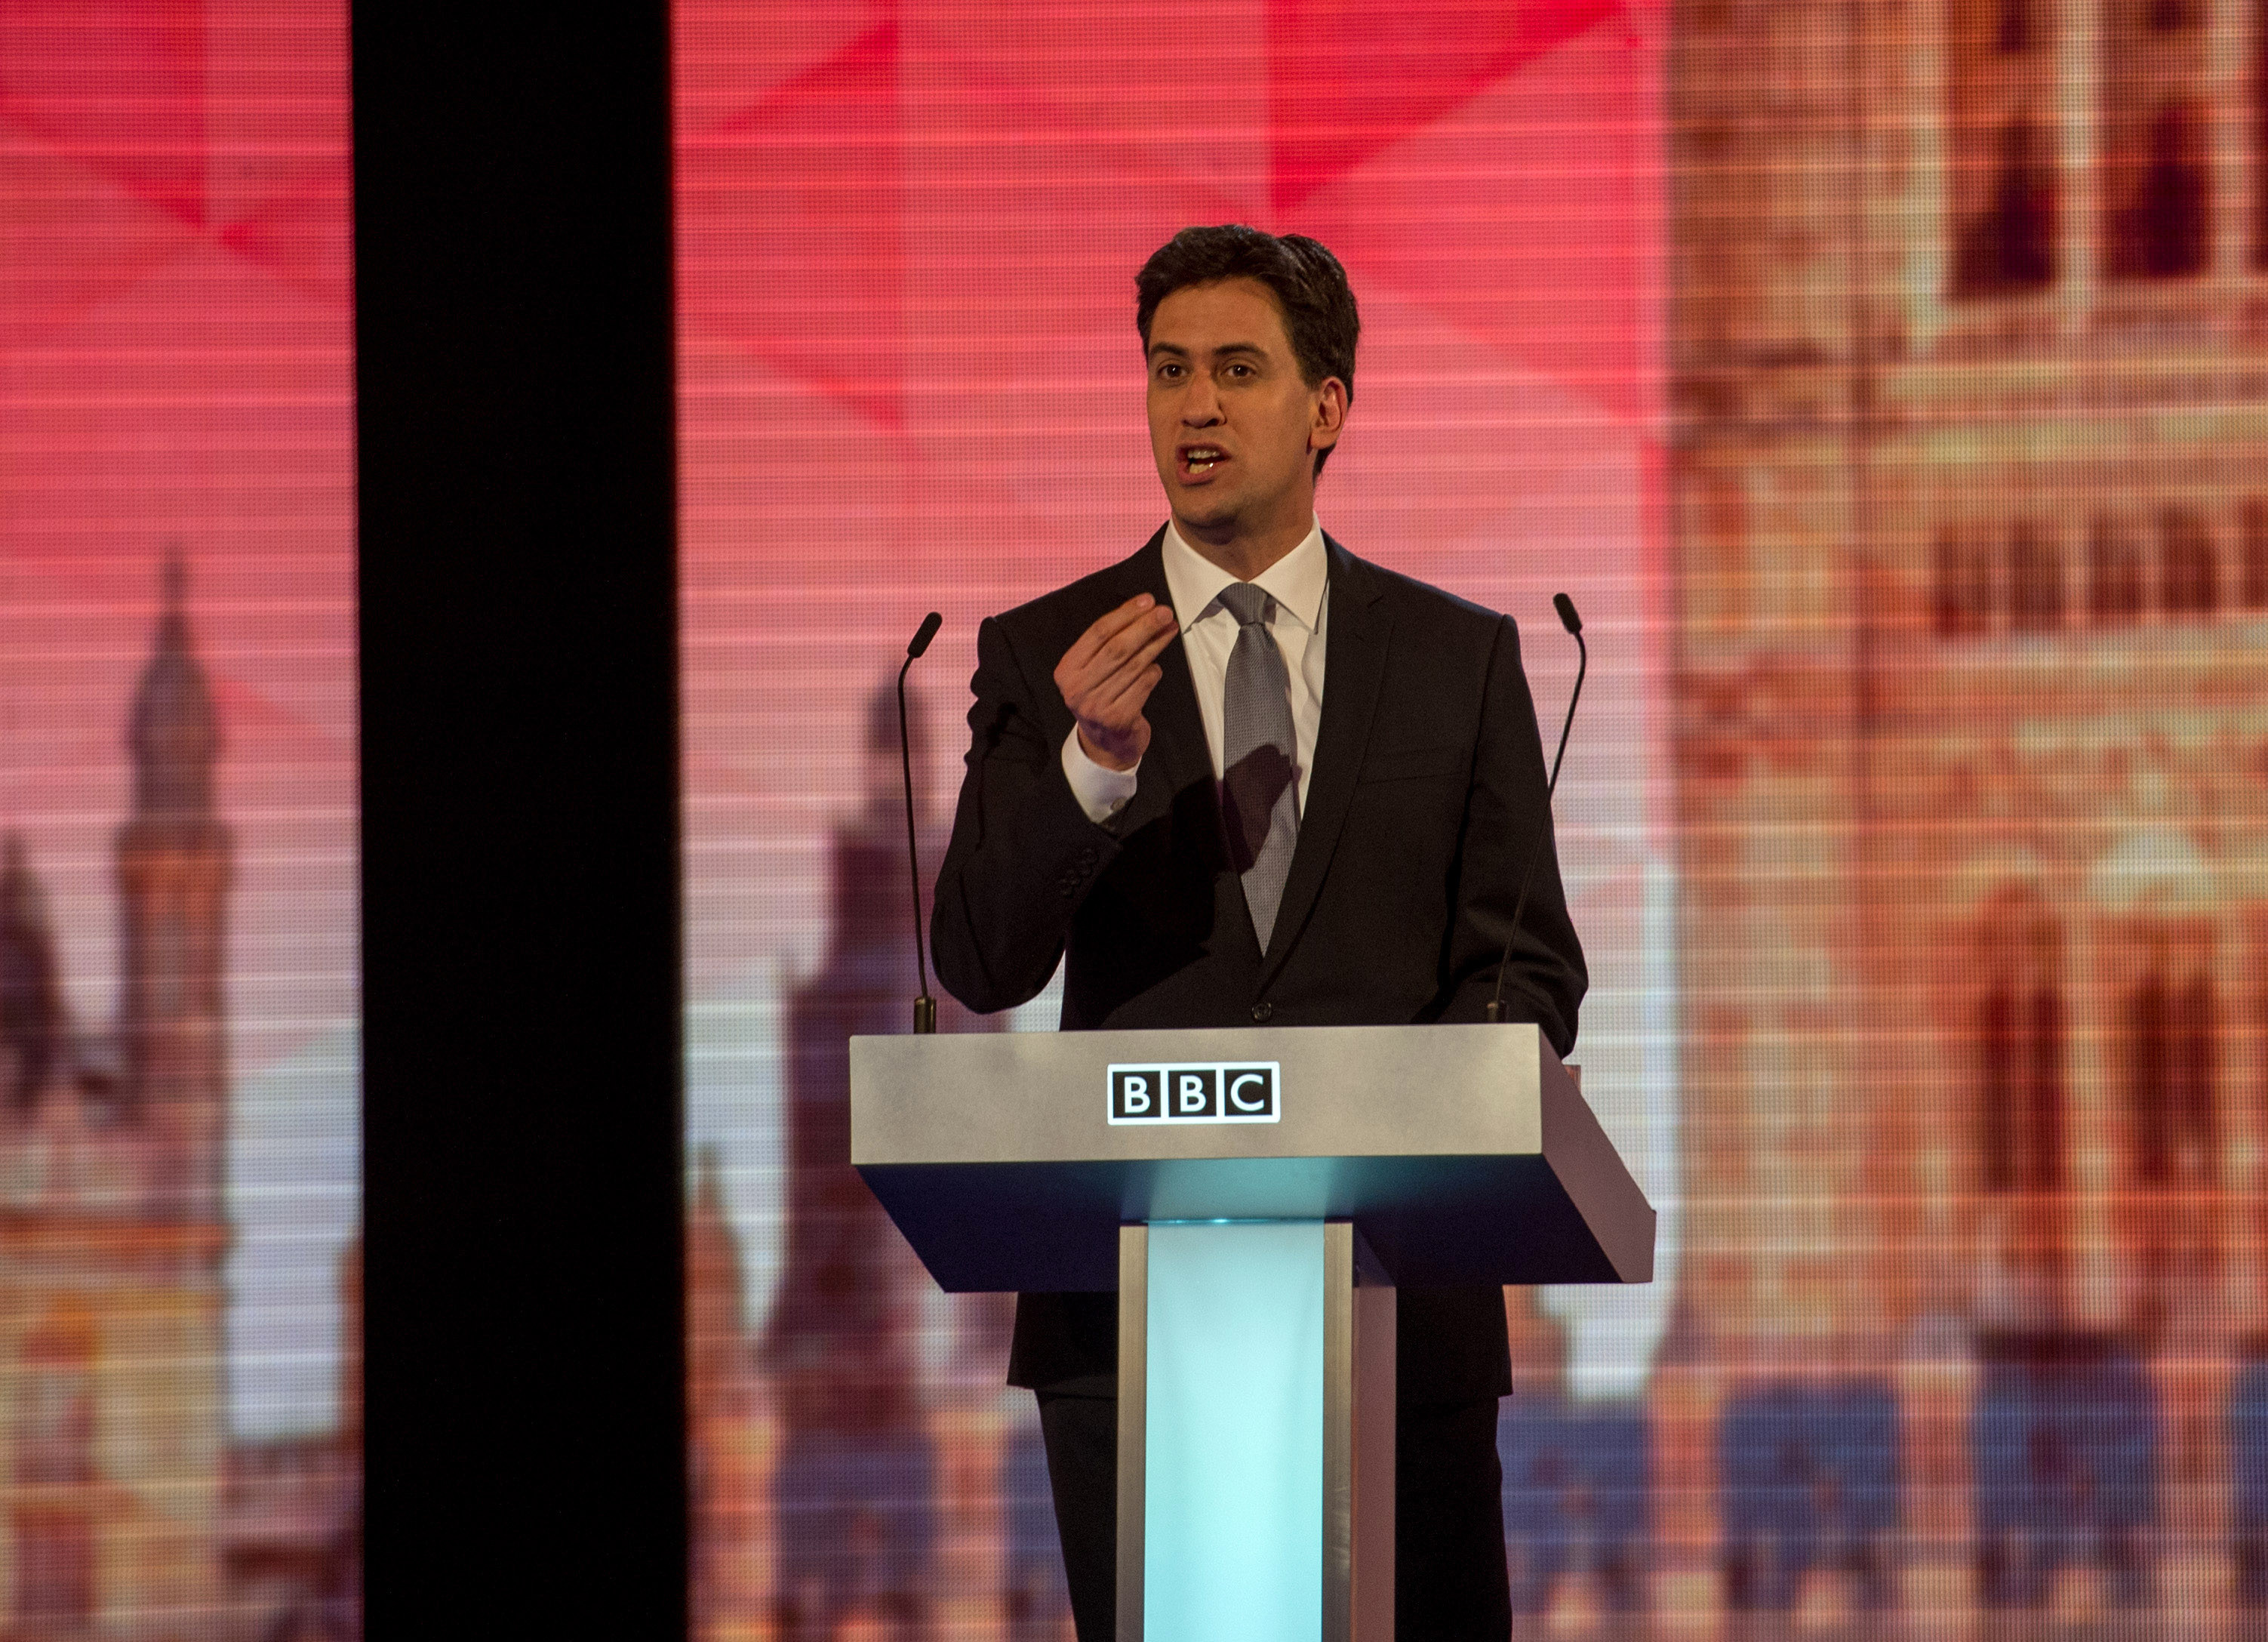 Nicola Sturgeon Says Voters Will 'Never Forgive' Ed Miliband During Heated BBC Election Debate